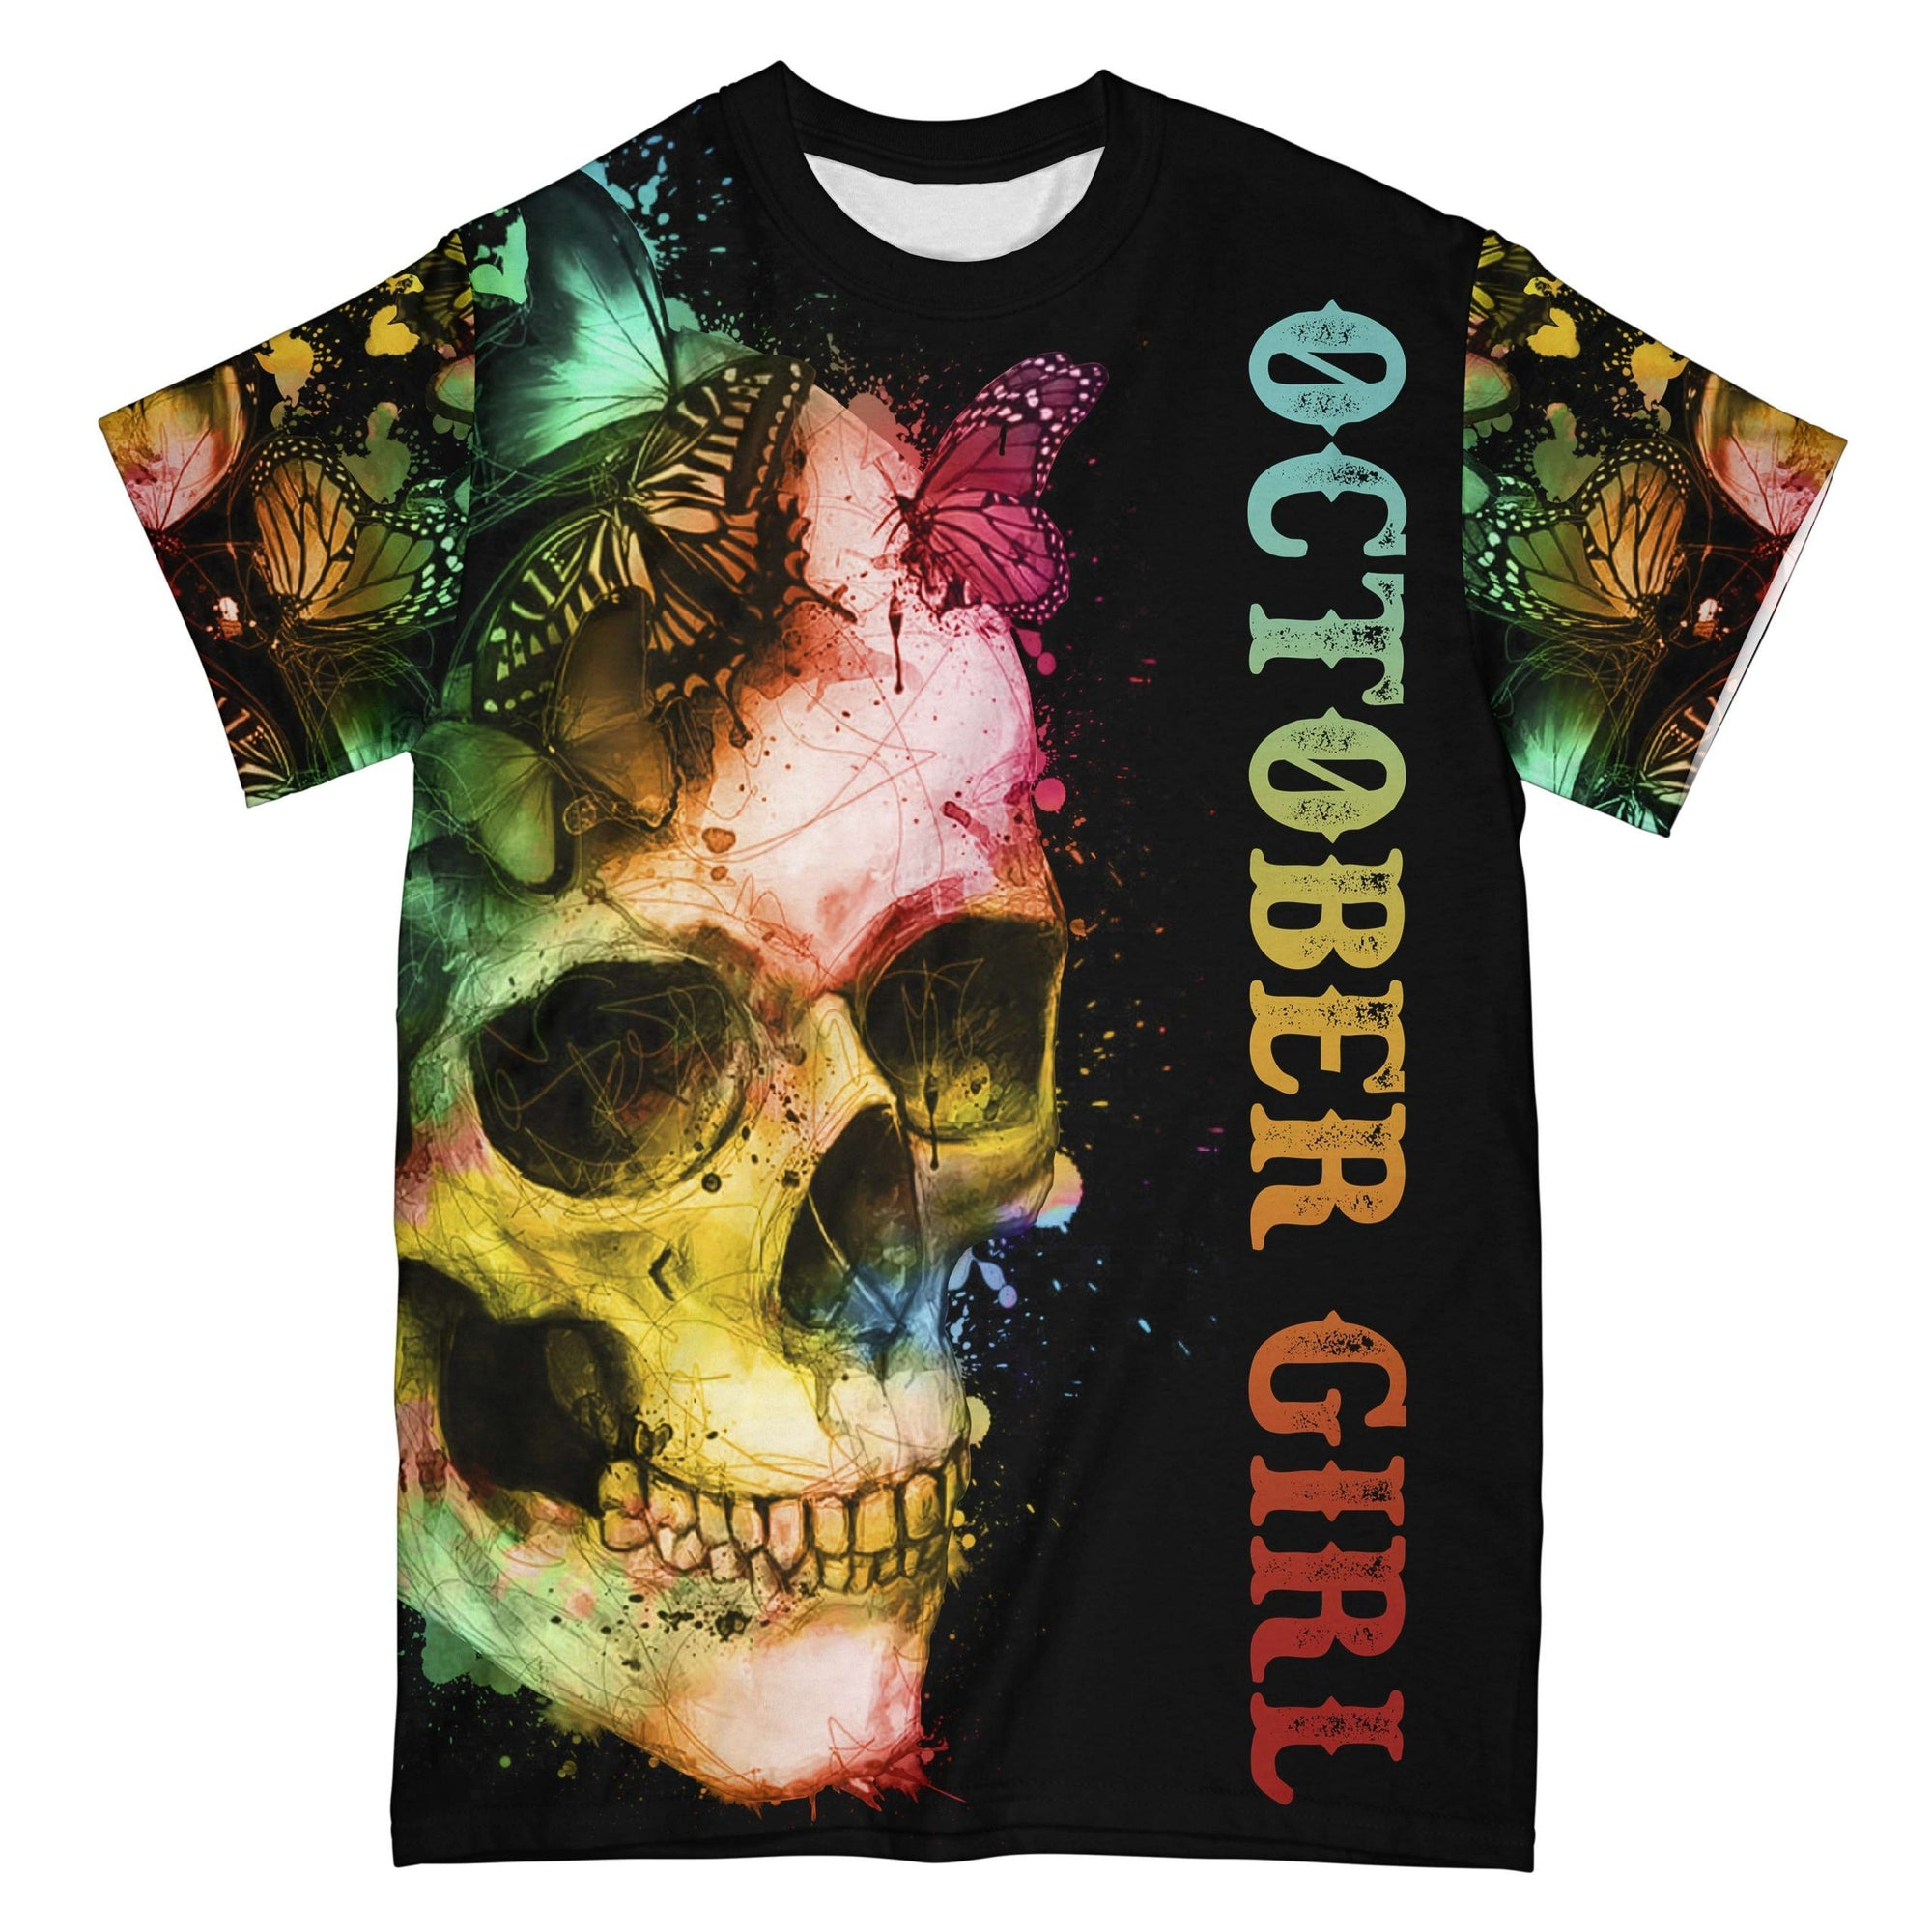 October Girl Butterfly Skull EZ08 2108 All Over T-shirt